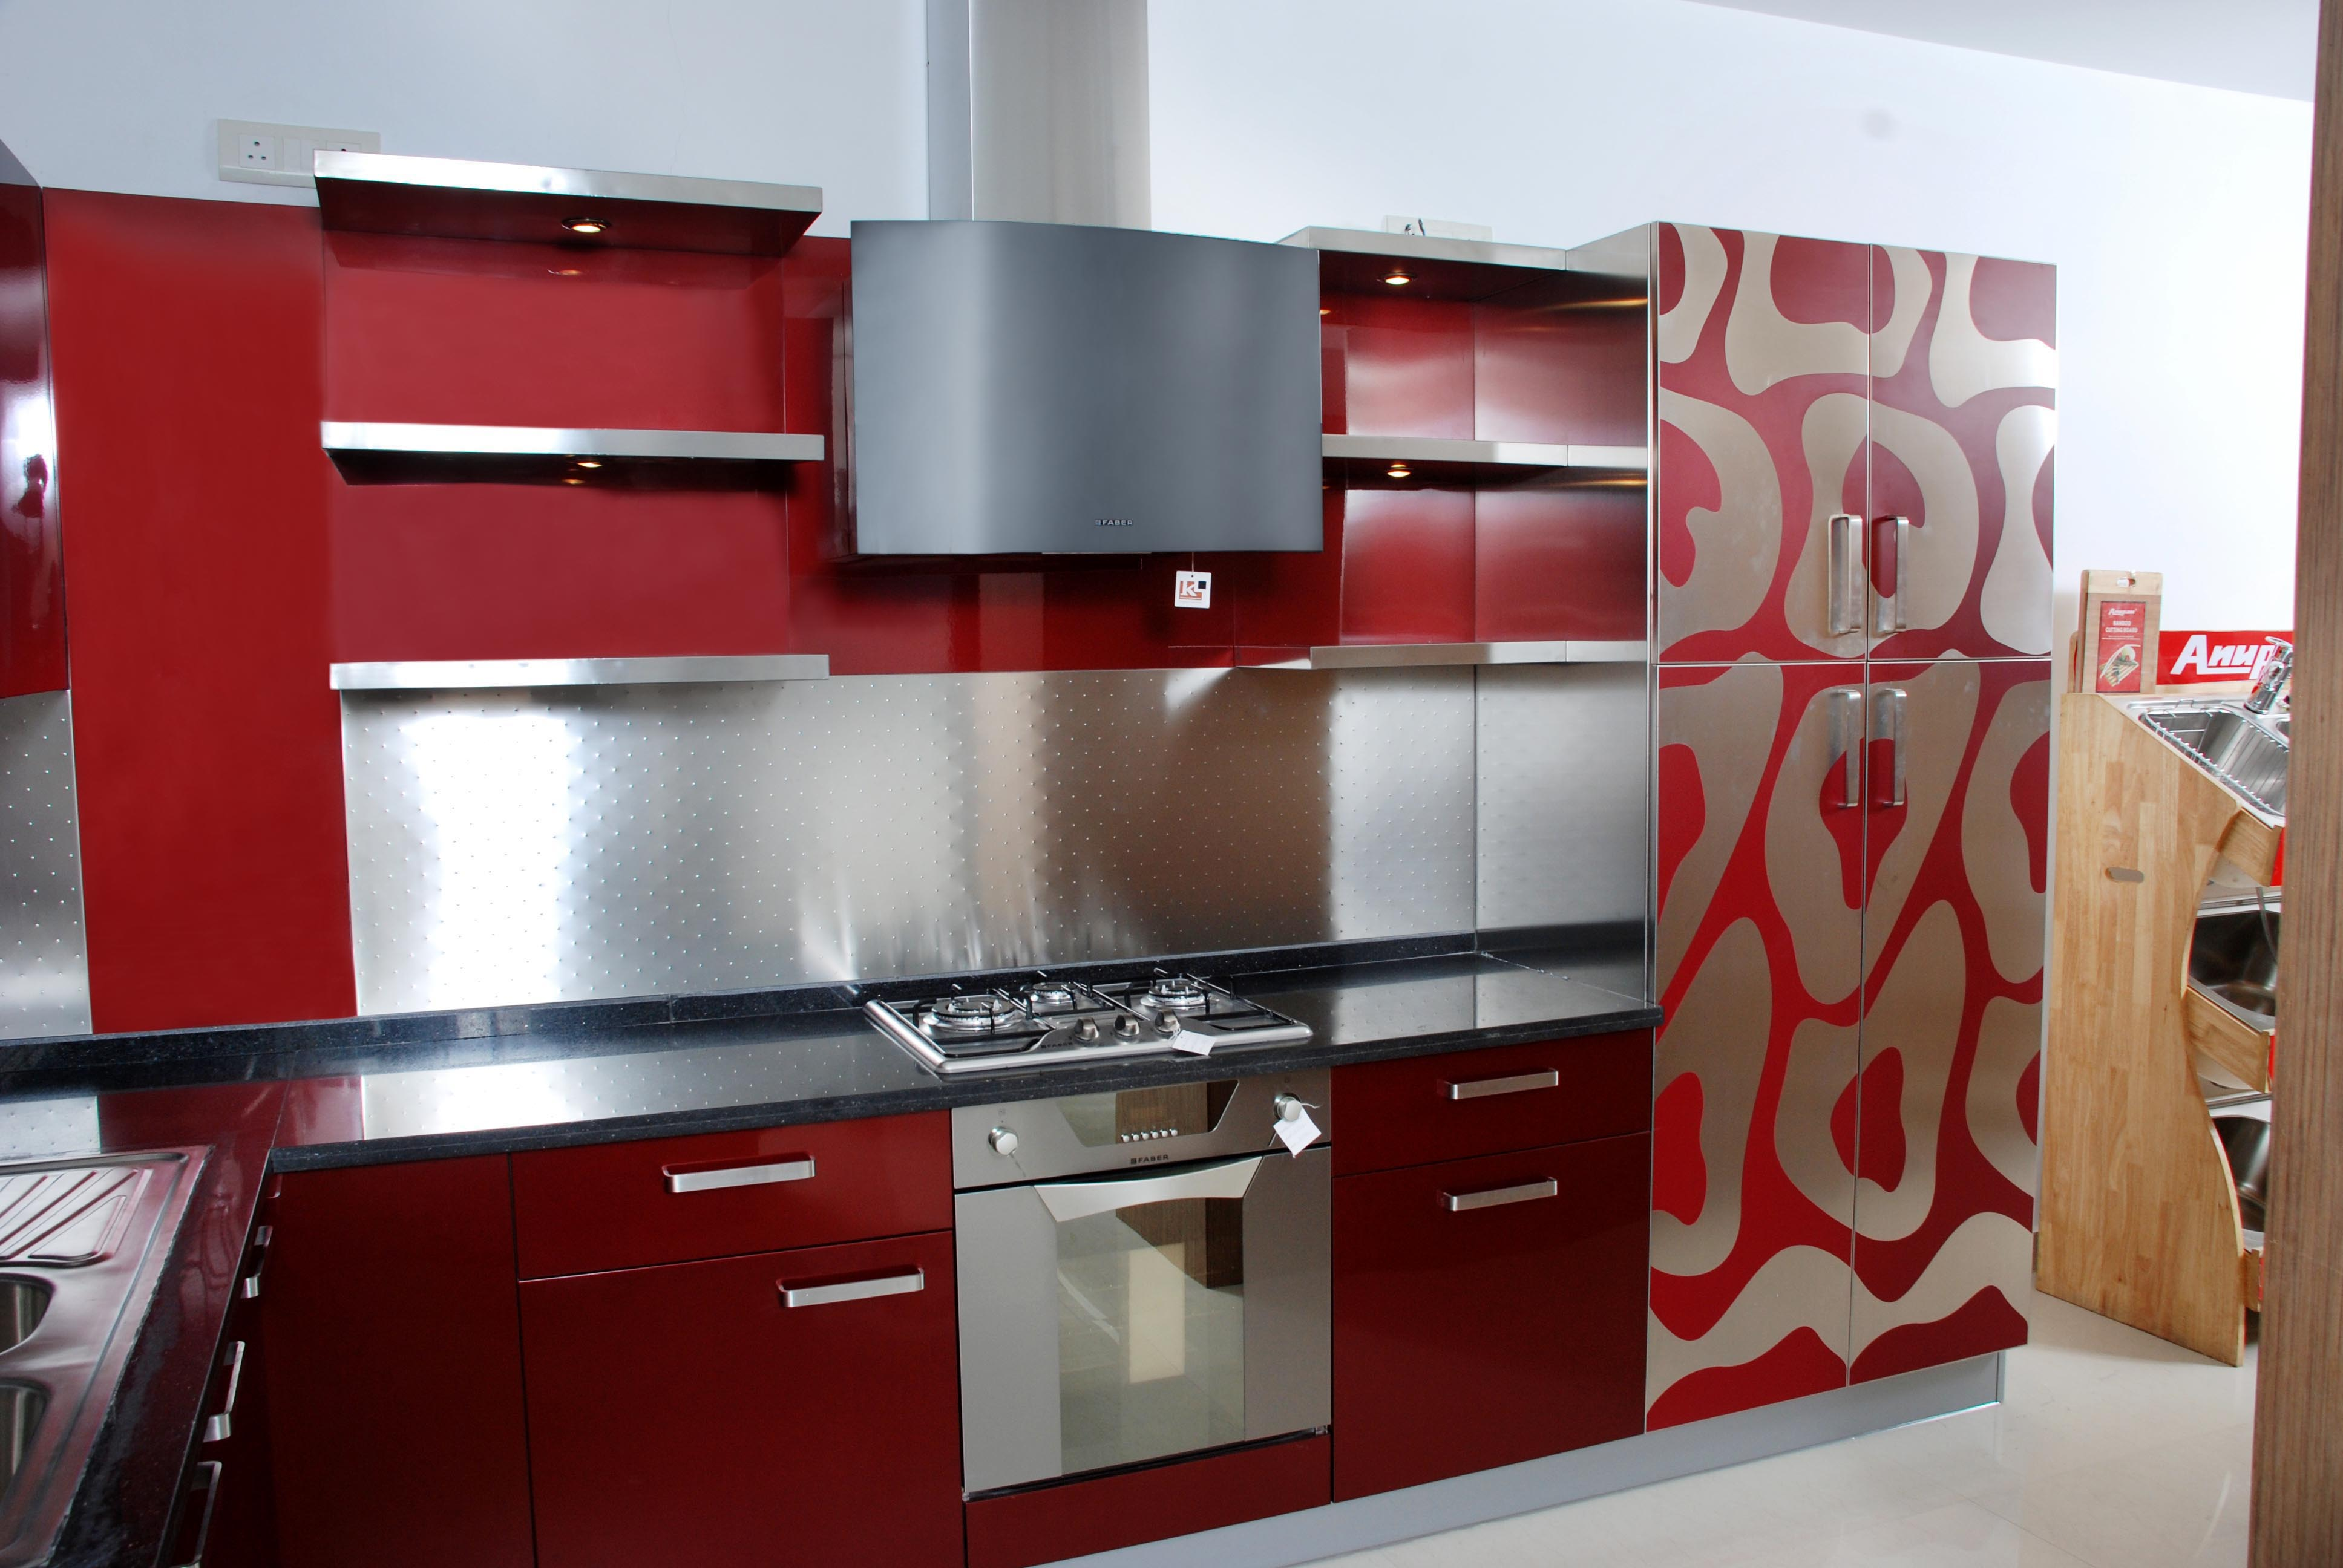 modular kitchen market in india 2014 2018 This report covers the present scenario and the growth prospects of the modular kitchen market in india for the period 2015-2019 it also includes the revenue generated from historical sales of.